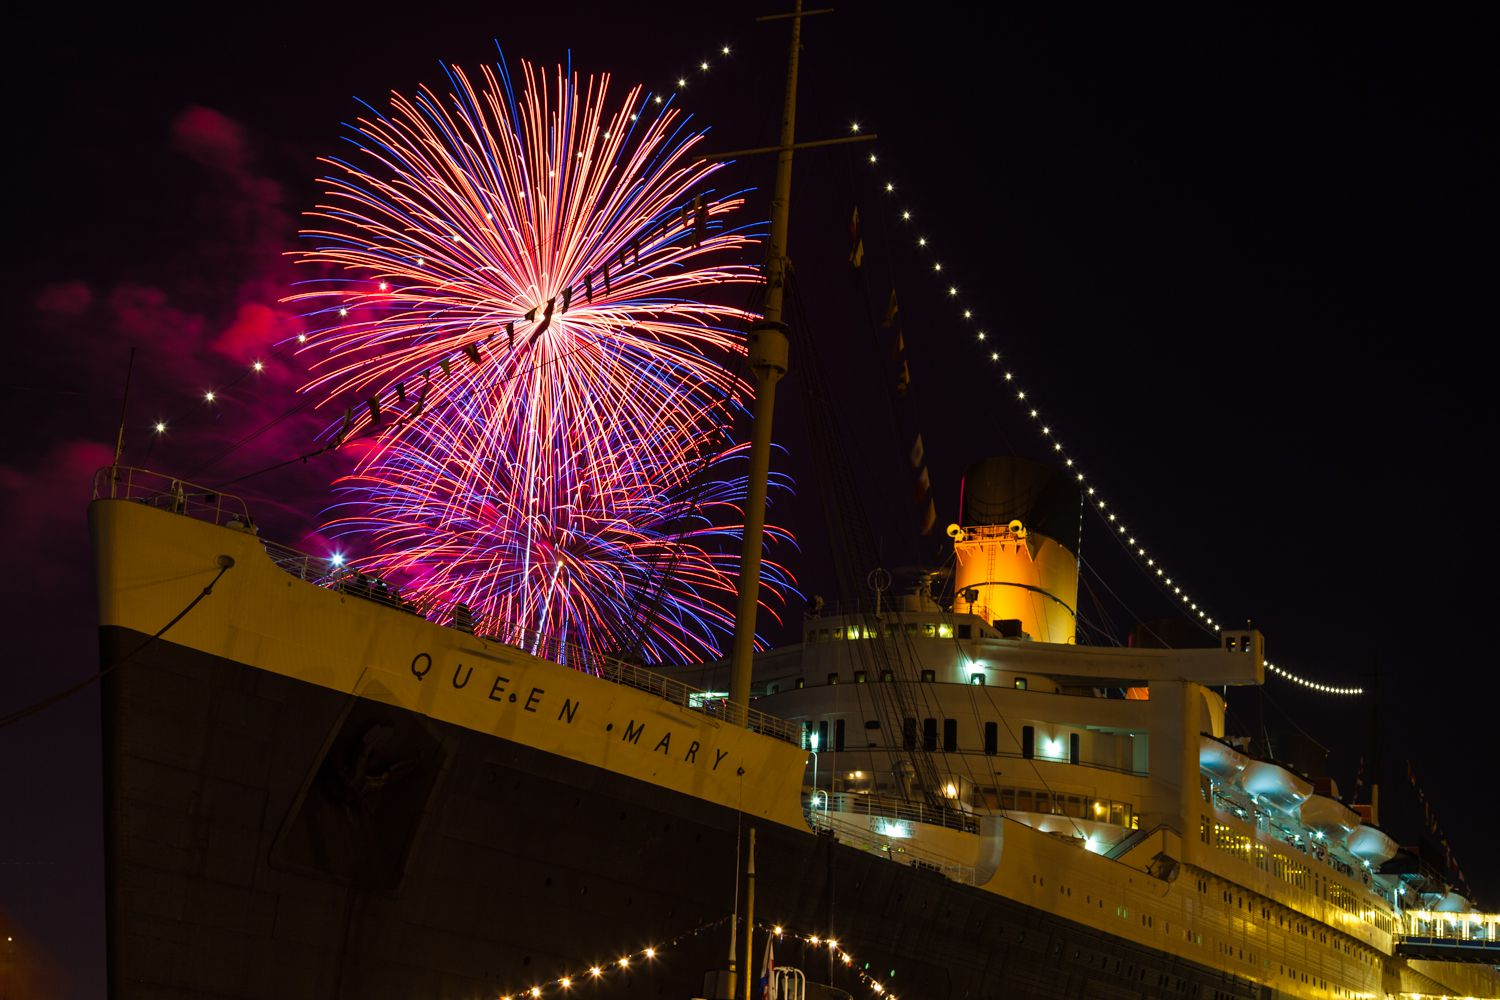 best spots to watch fireworks in san diego on july 4th